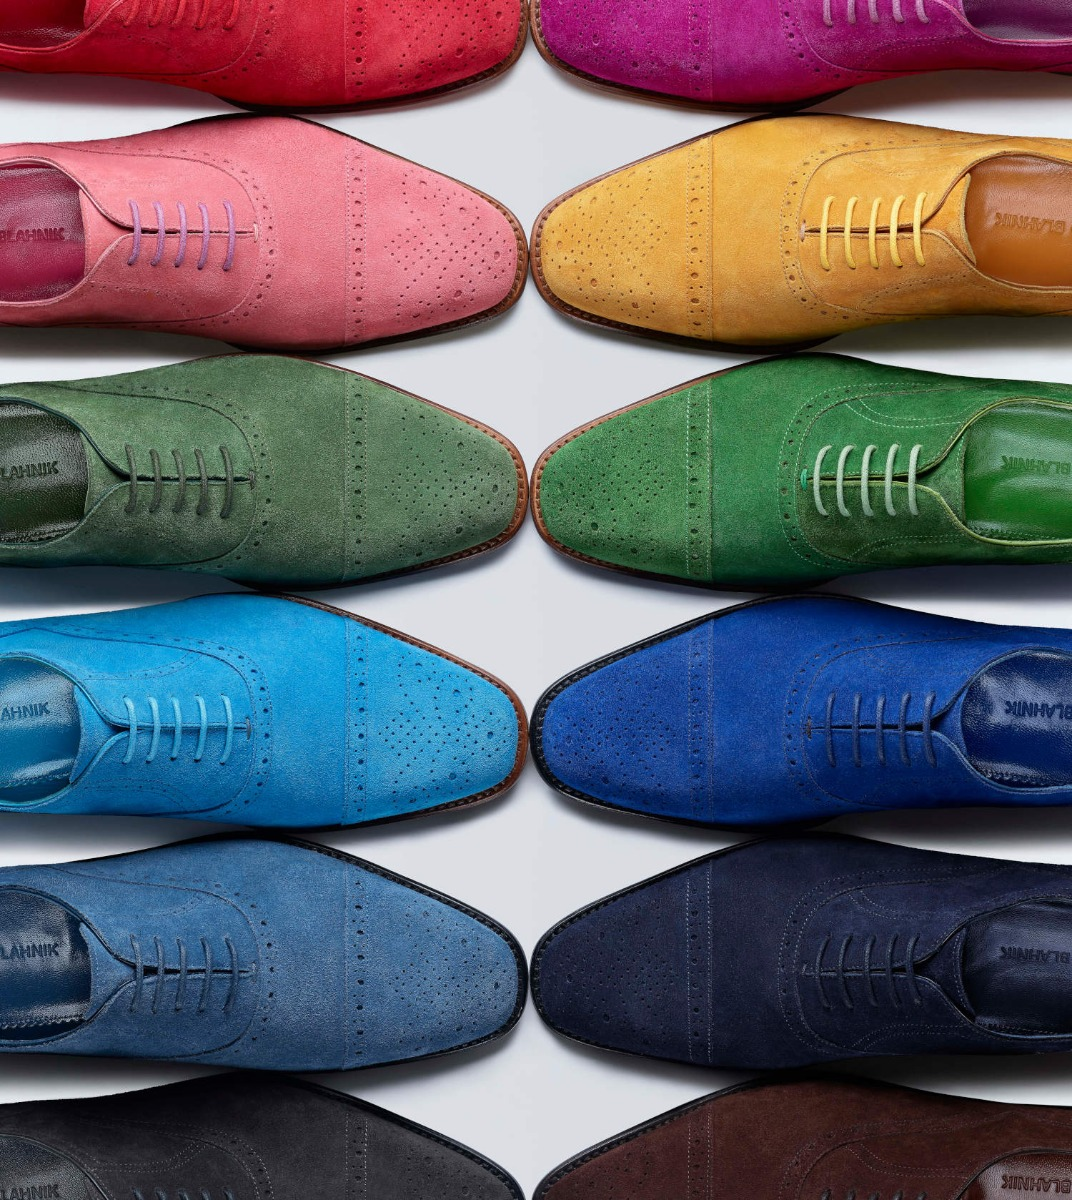 Two rows of single men's lace up oxfords. The shoes are made of suede and are positioned in a colour spectrum.